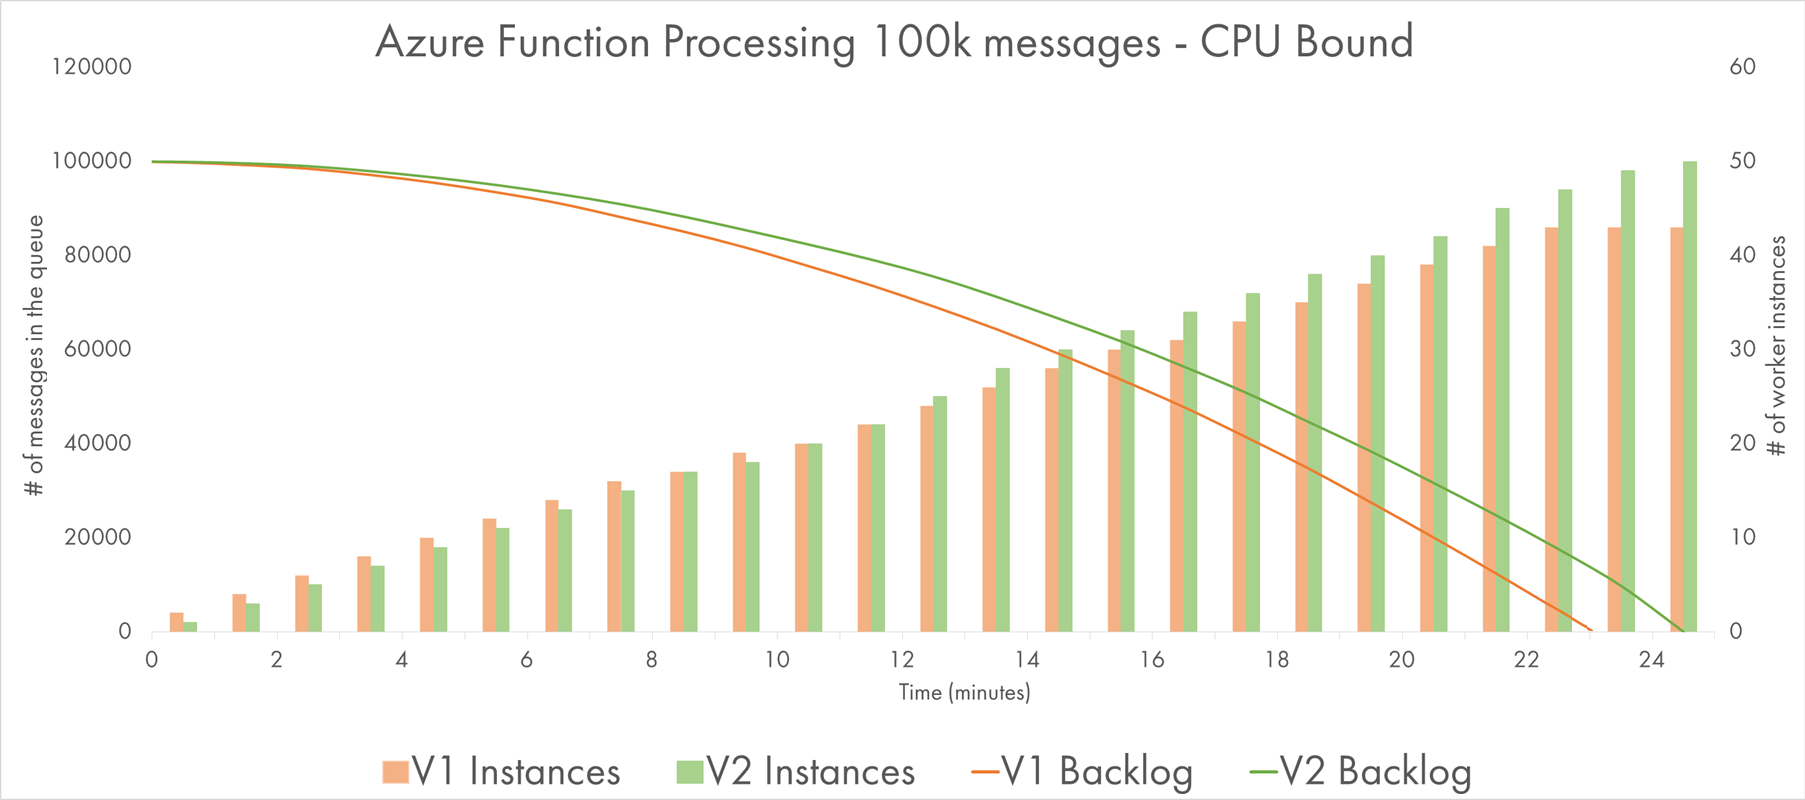 Processing Queue Messages with CPU-bound Workload